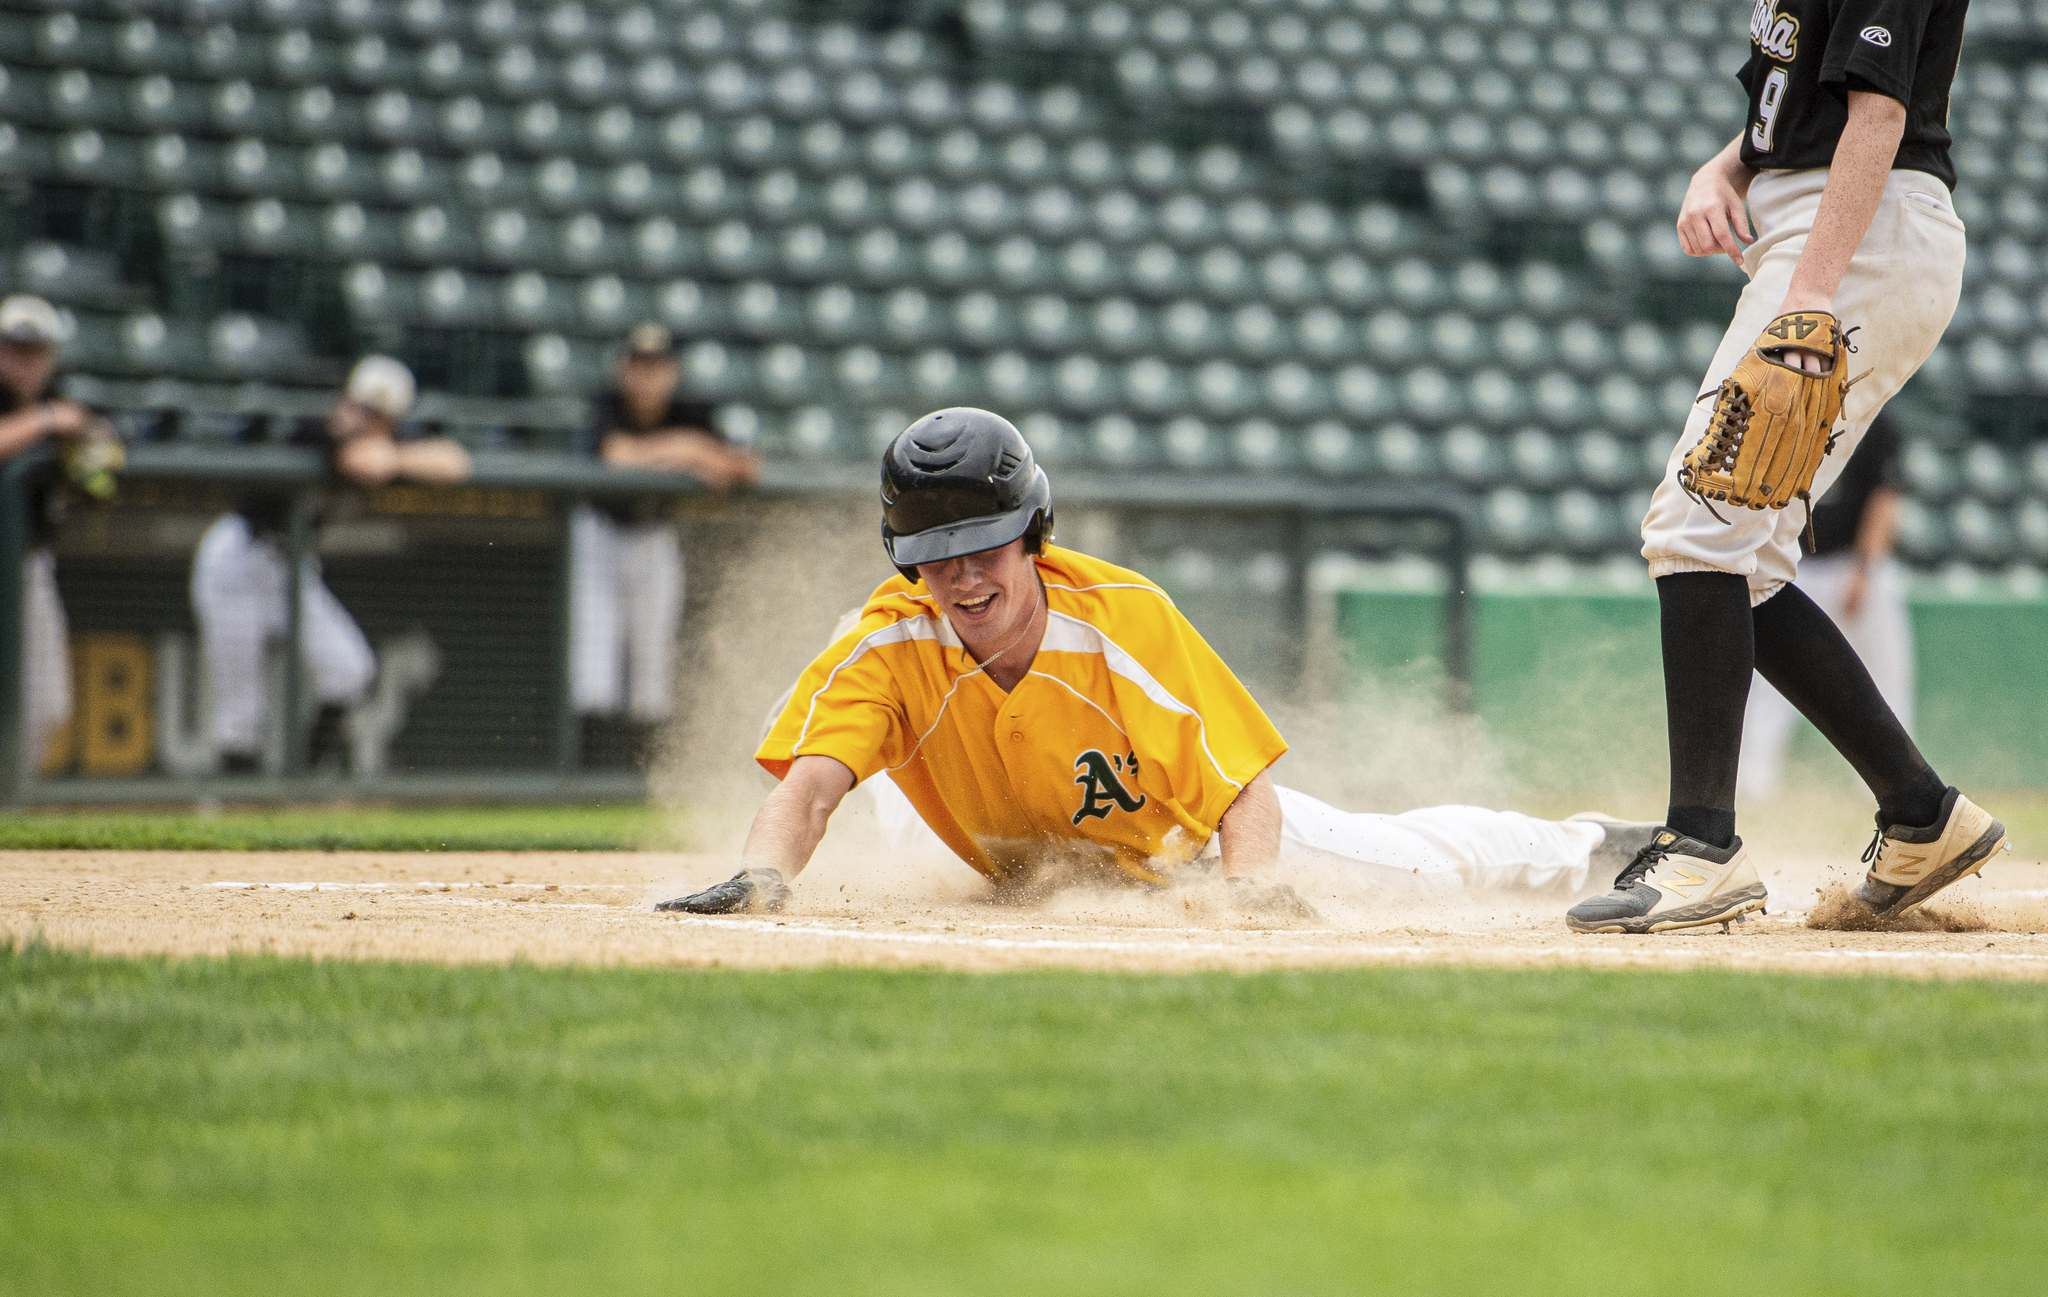 La Broquerie A's, Zac Tetrault slides to home plate in the third inning of their game against Team Manitoba's women's provincial team. (Mike Sudoma / Winnipeg Free Press)</p>